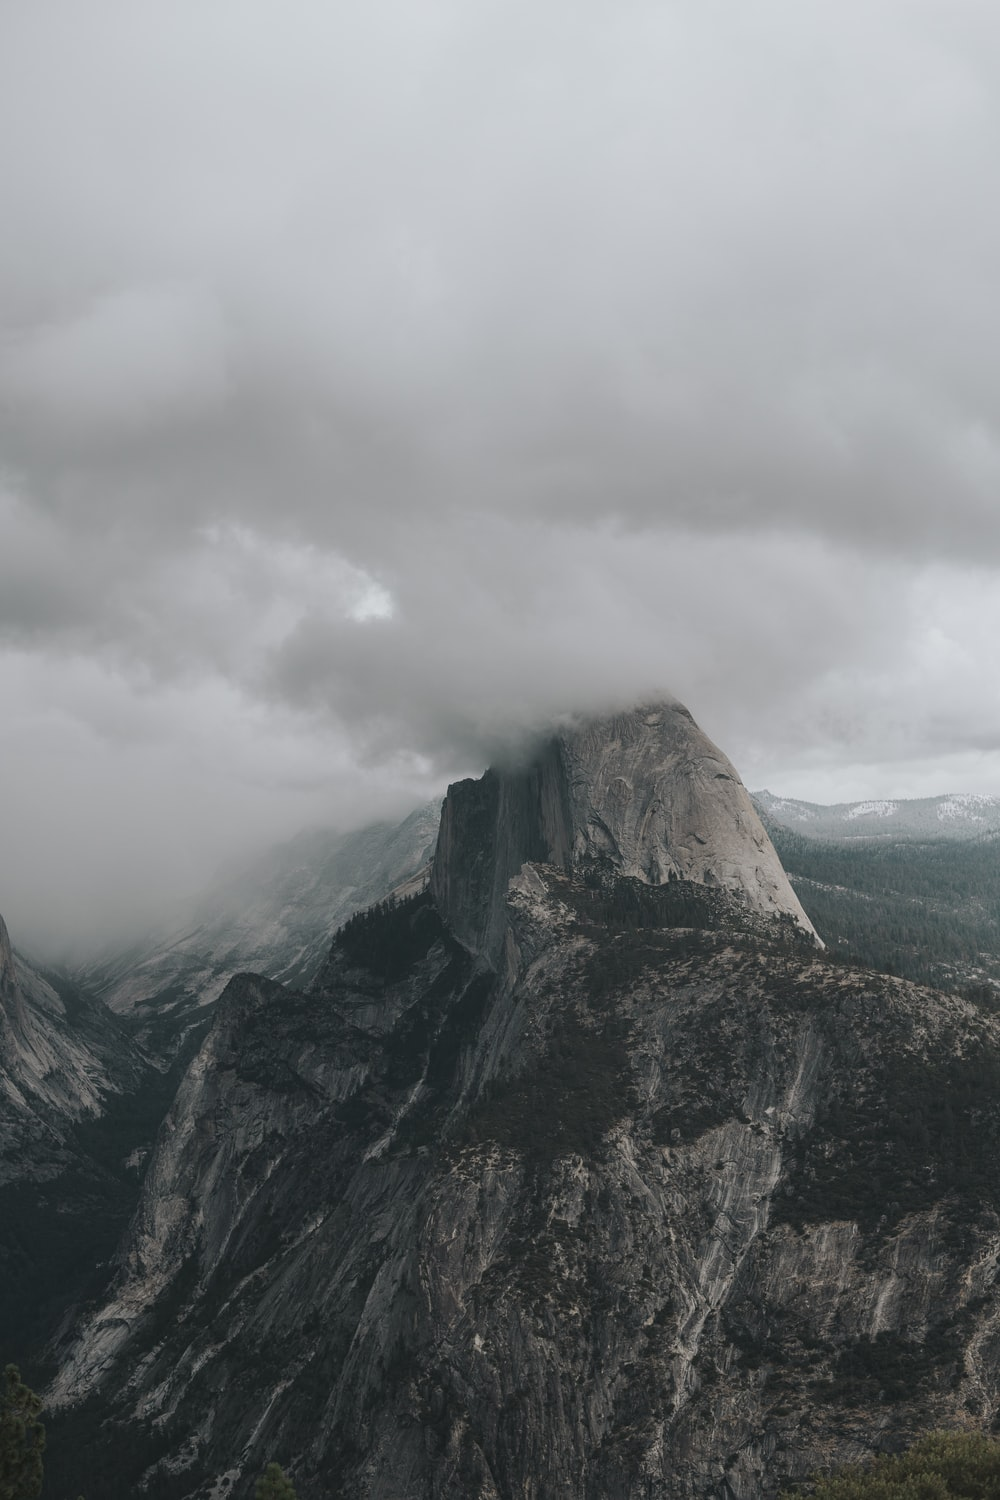 gray and green mountain under gray clouds